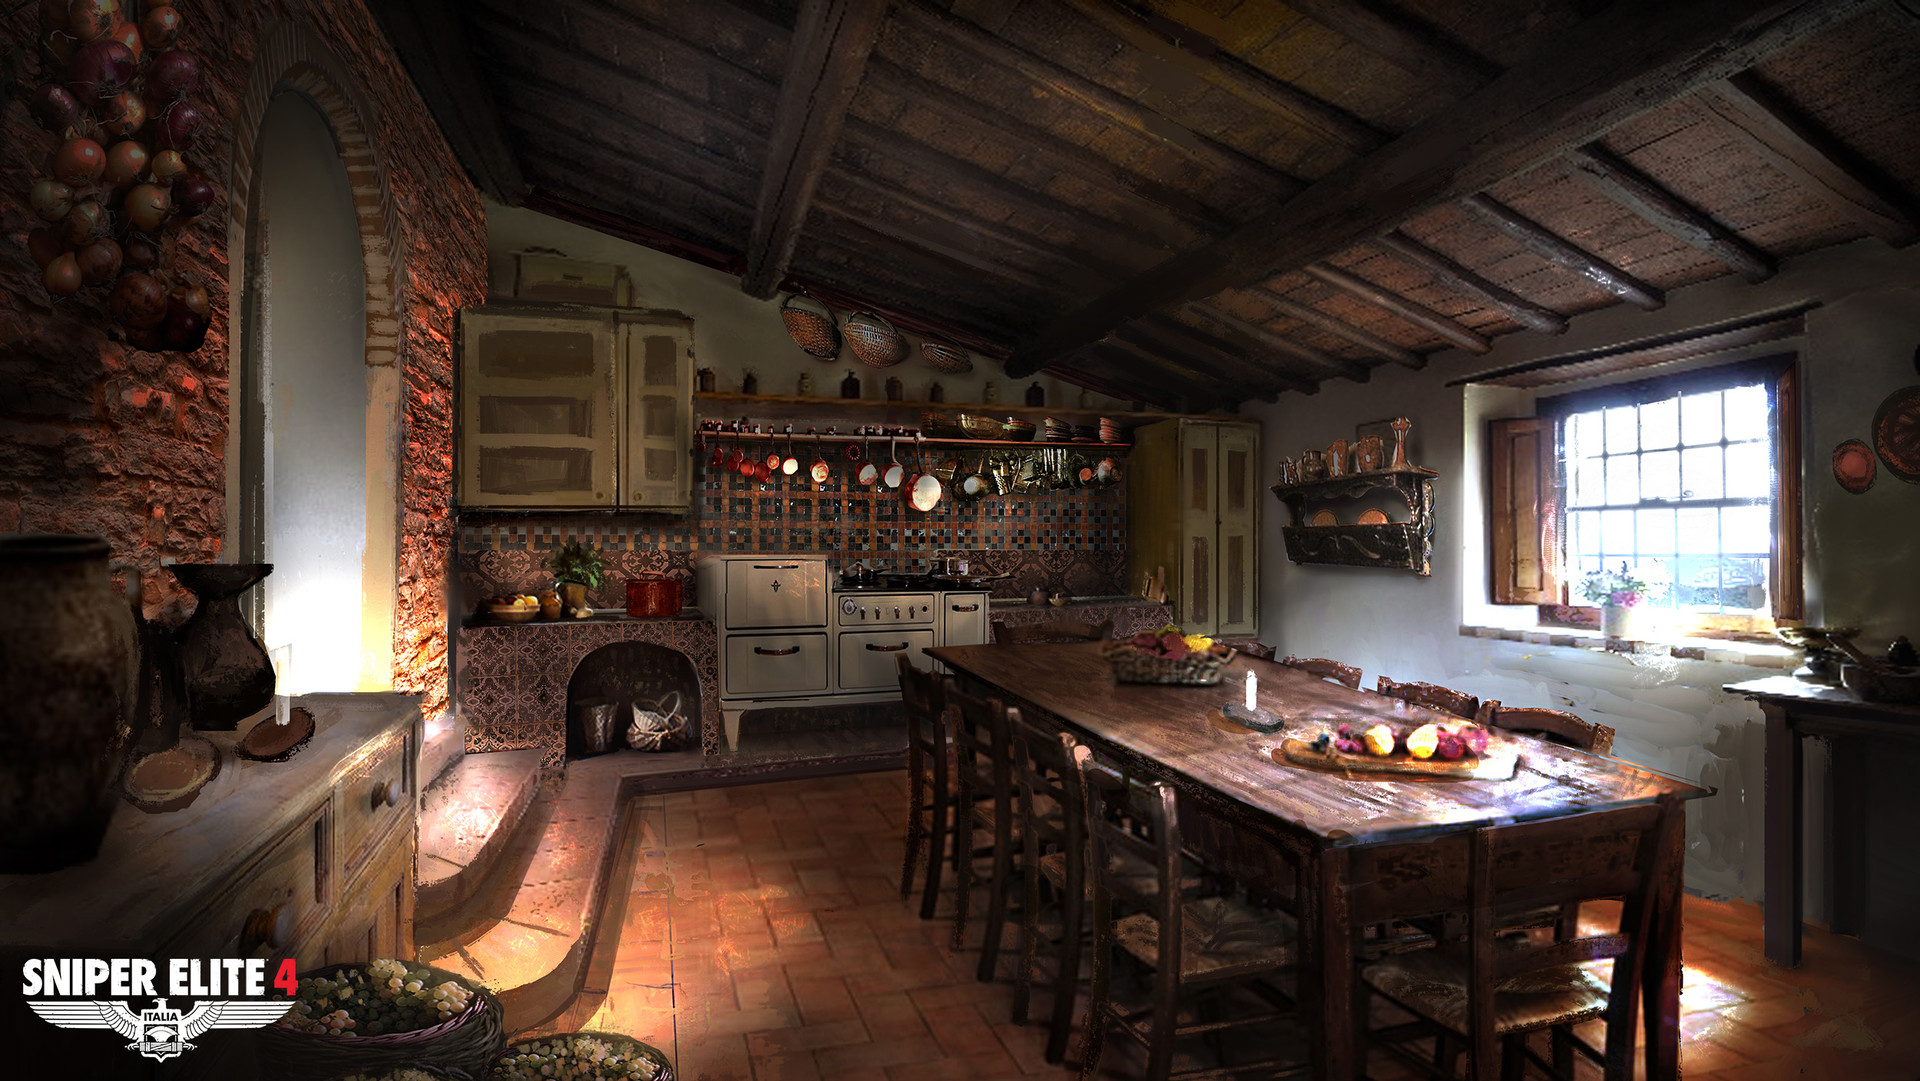 Jack eaves mountain forest village interior kitchen